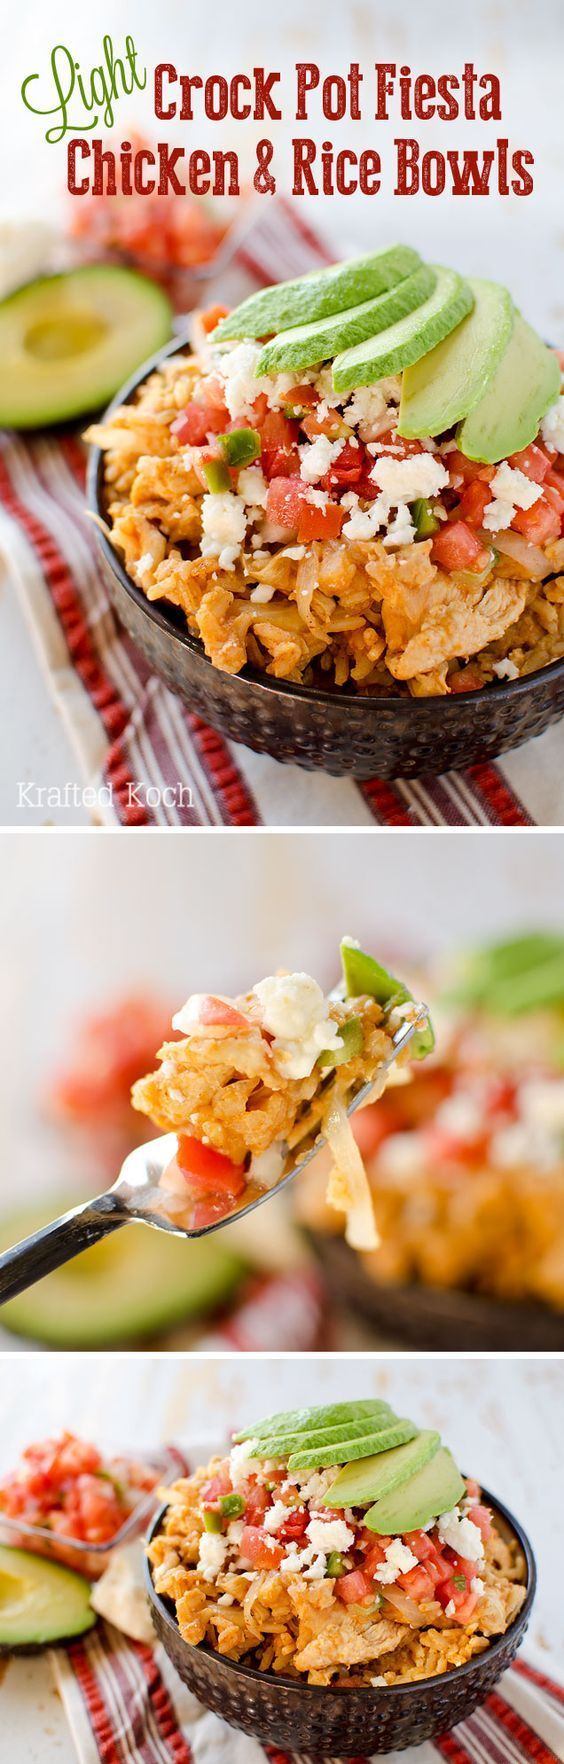 Light Crock Pot Fiesta Chicken & Rice Bowls  - An easy weeknight dinner recipe, loaded with bold Mexican flavor, made in your slow cooker for a healthy and delicious dinner. (Light Mexican Recipes)